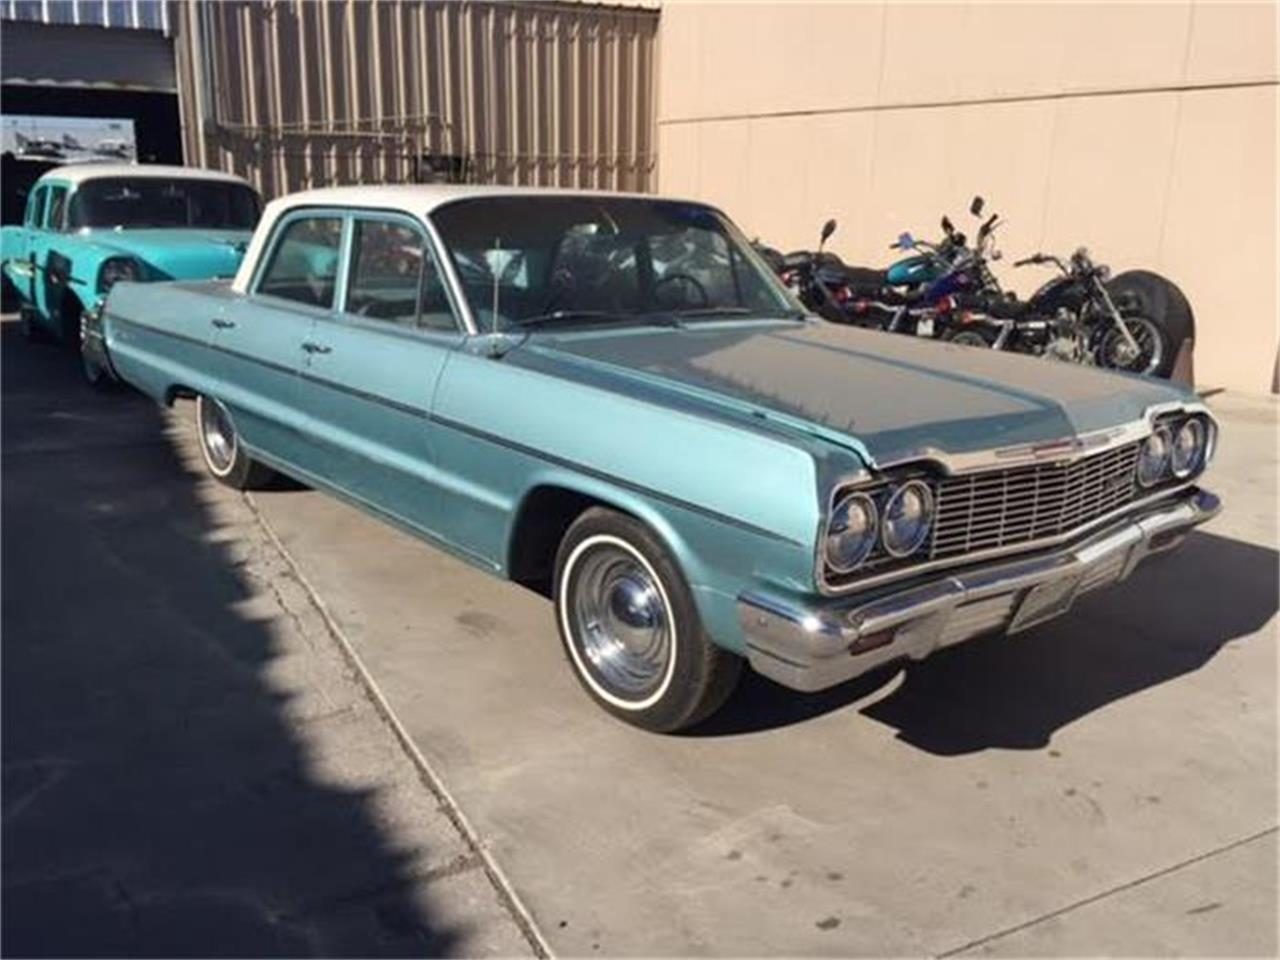 Large Picture of '64 Chevrolet Bel Air located in Arizona - $9,500.00 Offered by Desert Valley Auto Parts - GANB